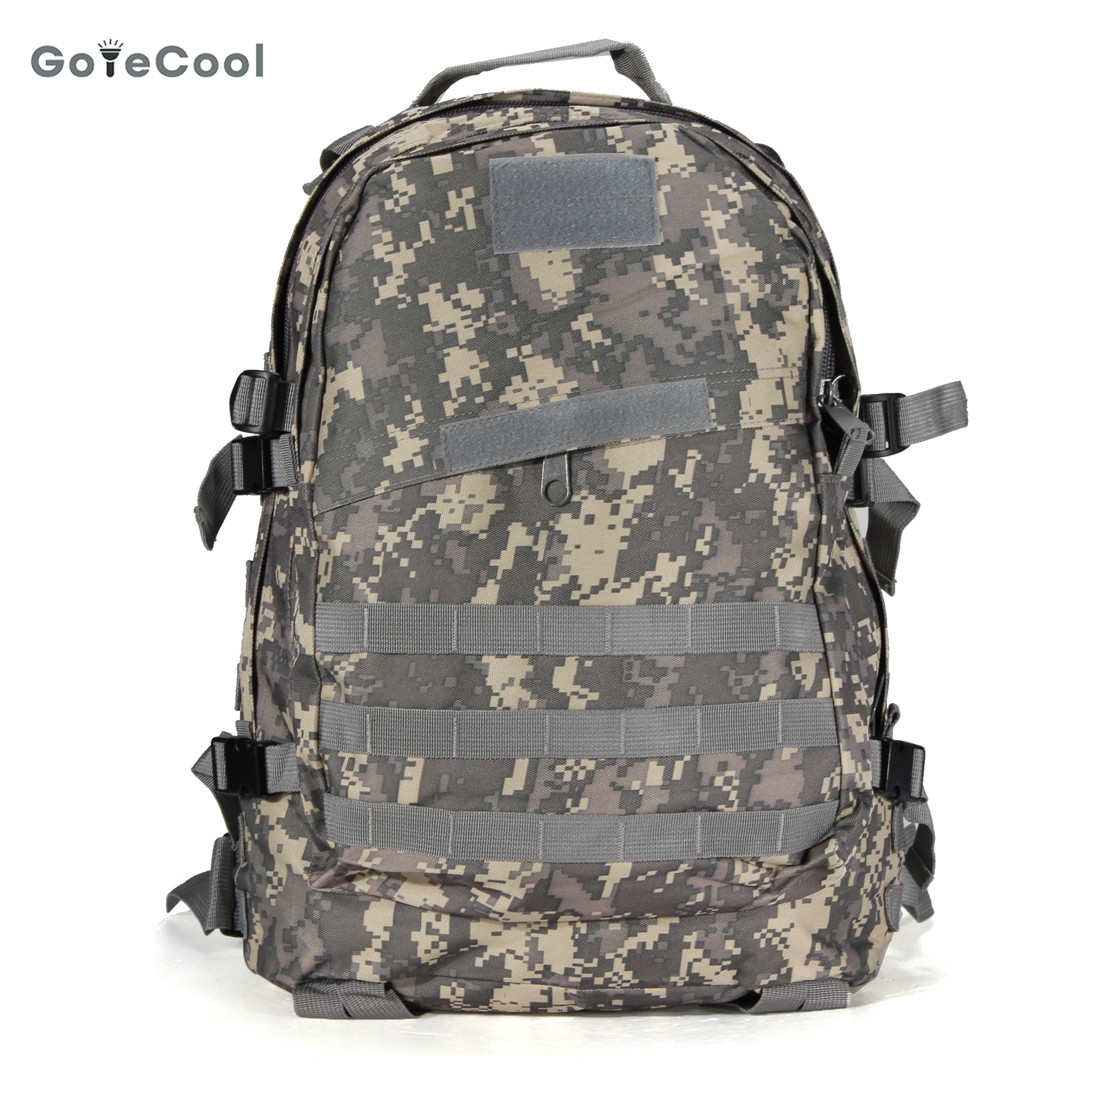 40L 3D Outdoor Sport Military Tactical climbing mountaineering Backpack Camping Hiking Trekking Rucksack Travel outdoor Bag 40l 3d outdoor sport nylon military tactical backpack rucksack travel bag camping hiking climbing bag